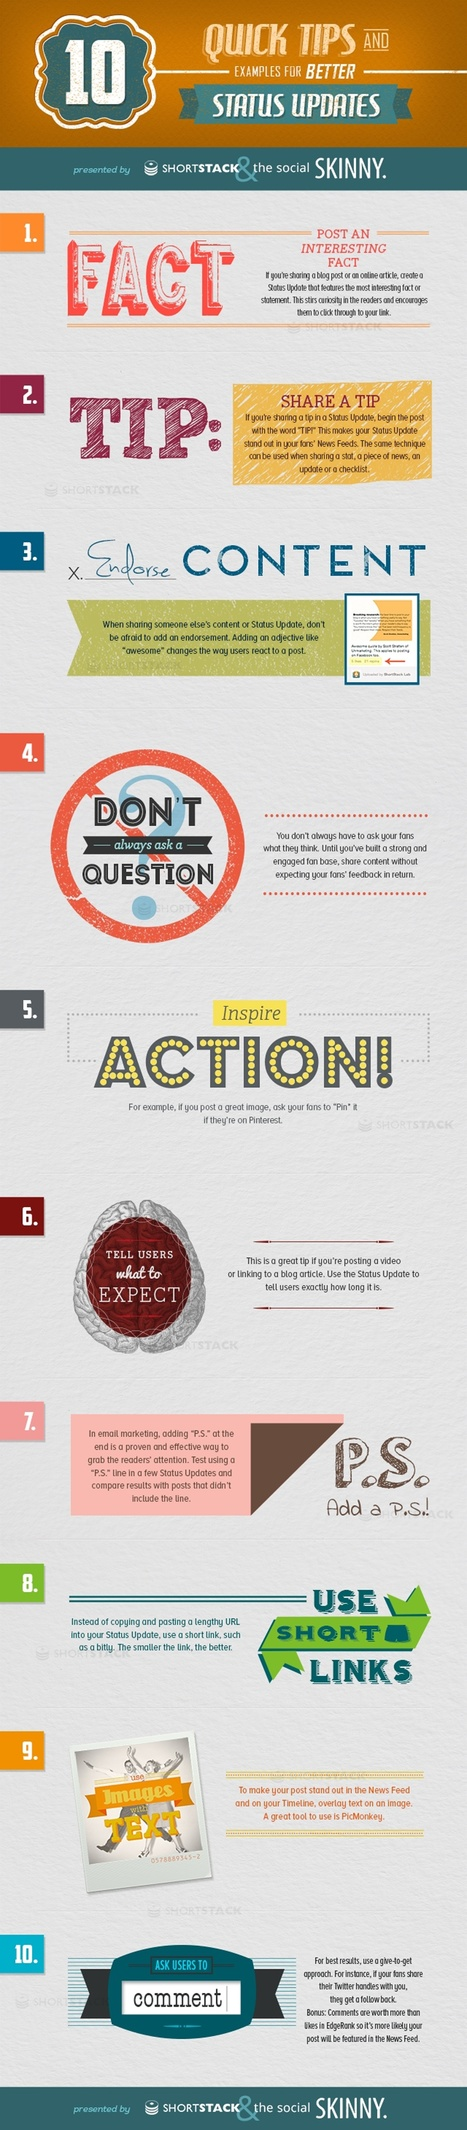 Infographic: Ideas for social content creation | MarketingHits | Scoop.it